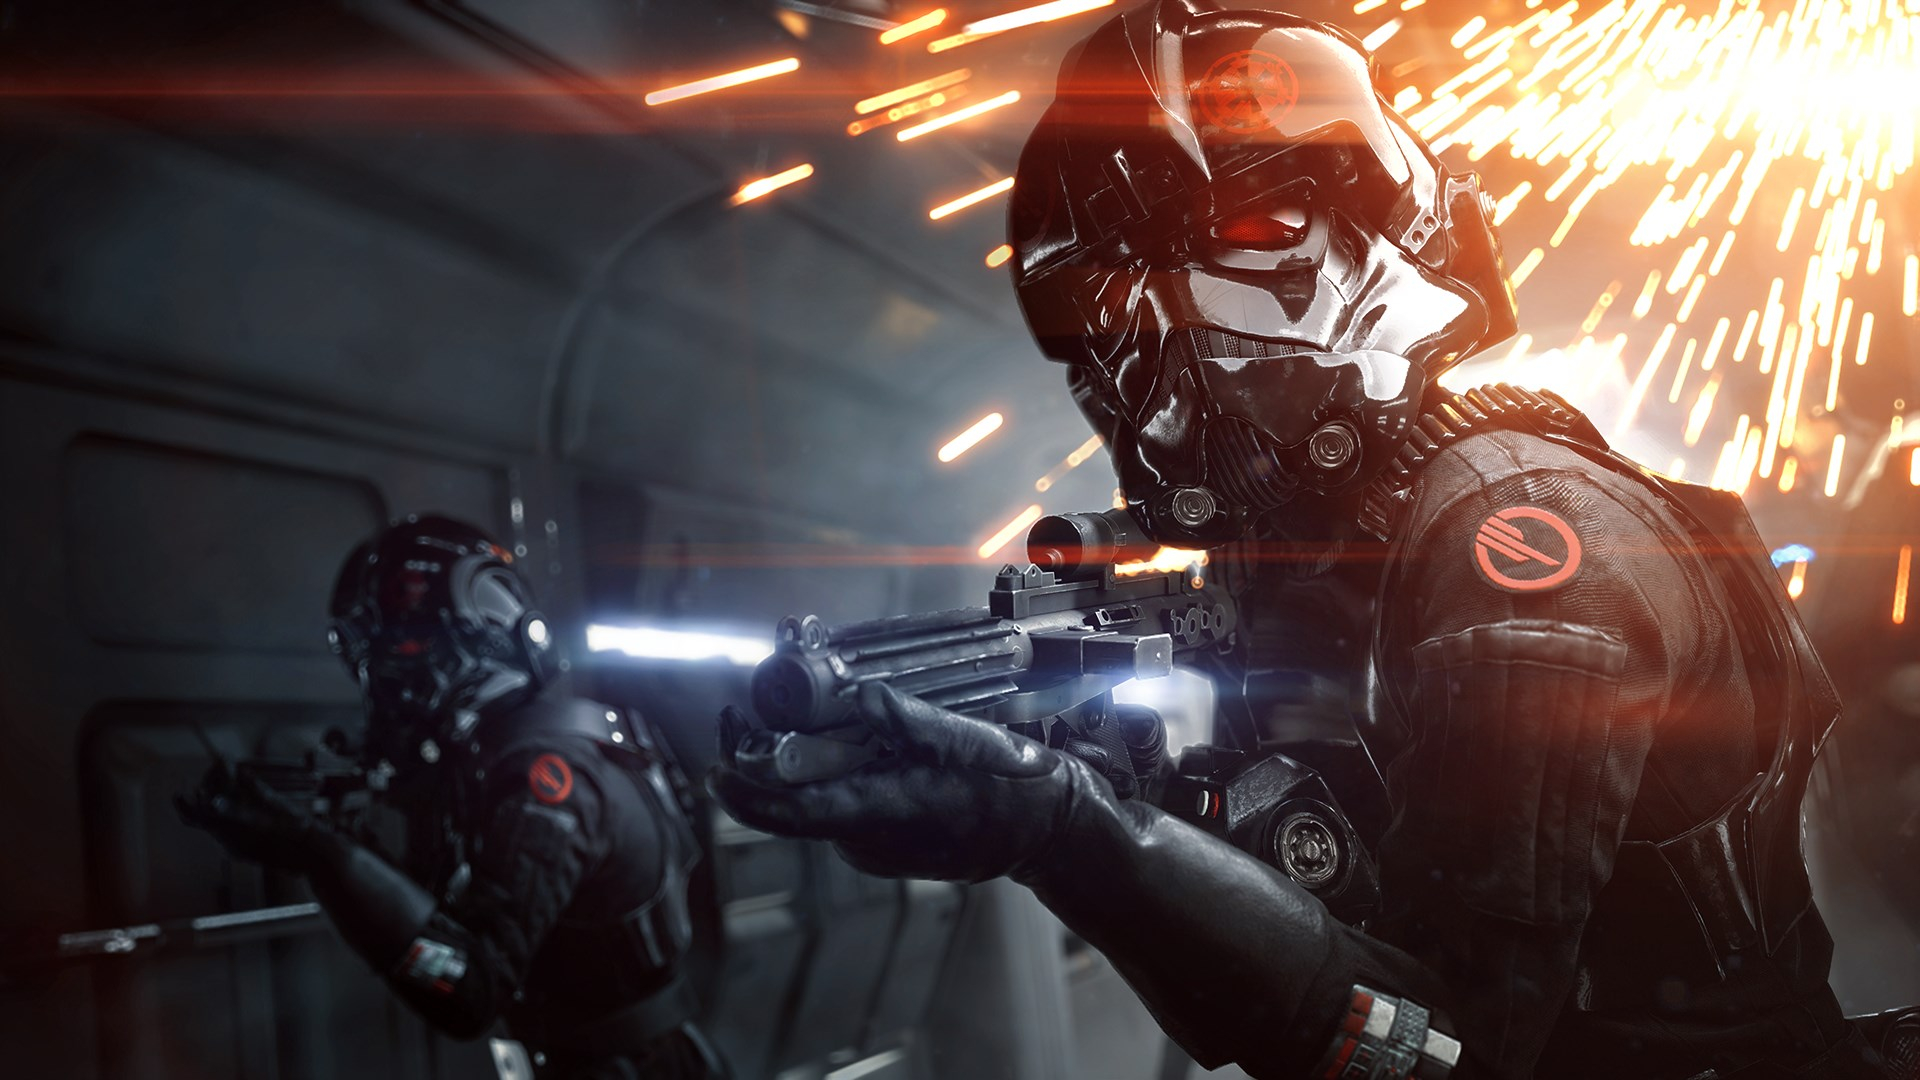 Star Wars Battlefront 2 Celebration Edition For Ps4 Xb1 Pc Xbxs Ps5 Reviews Opencritic